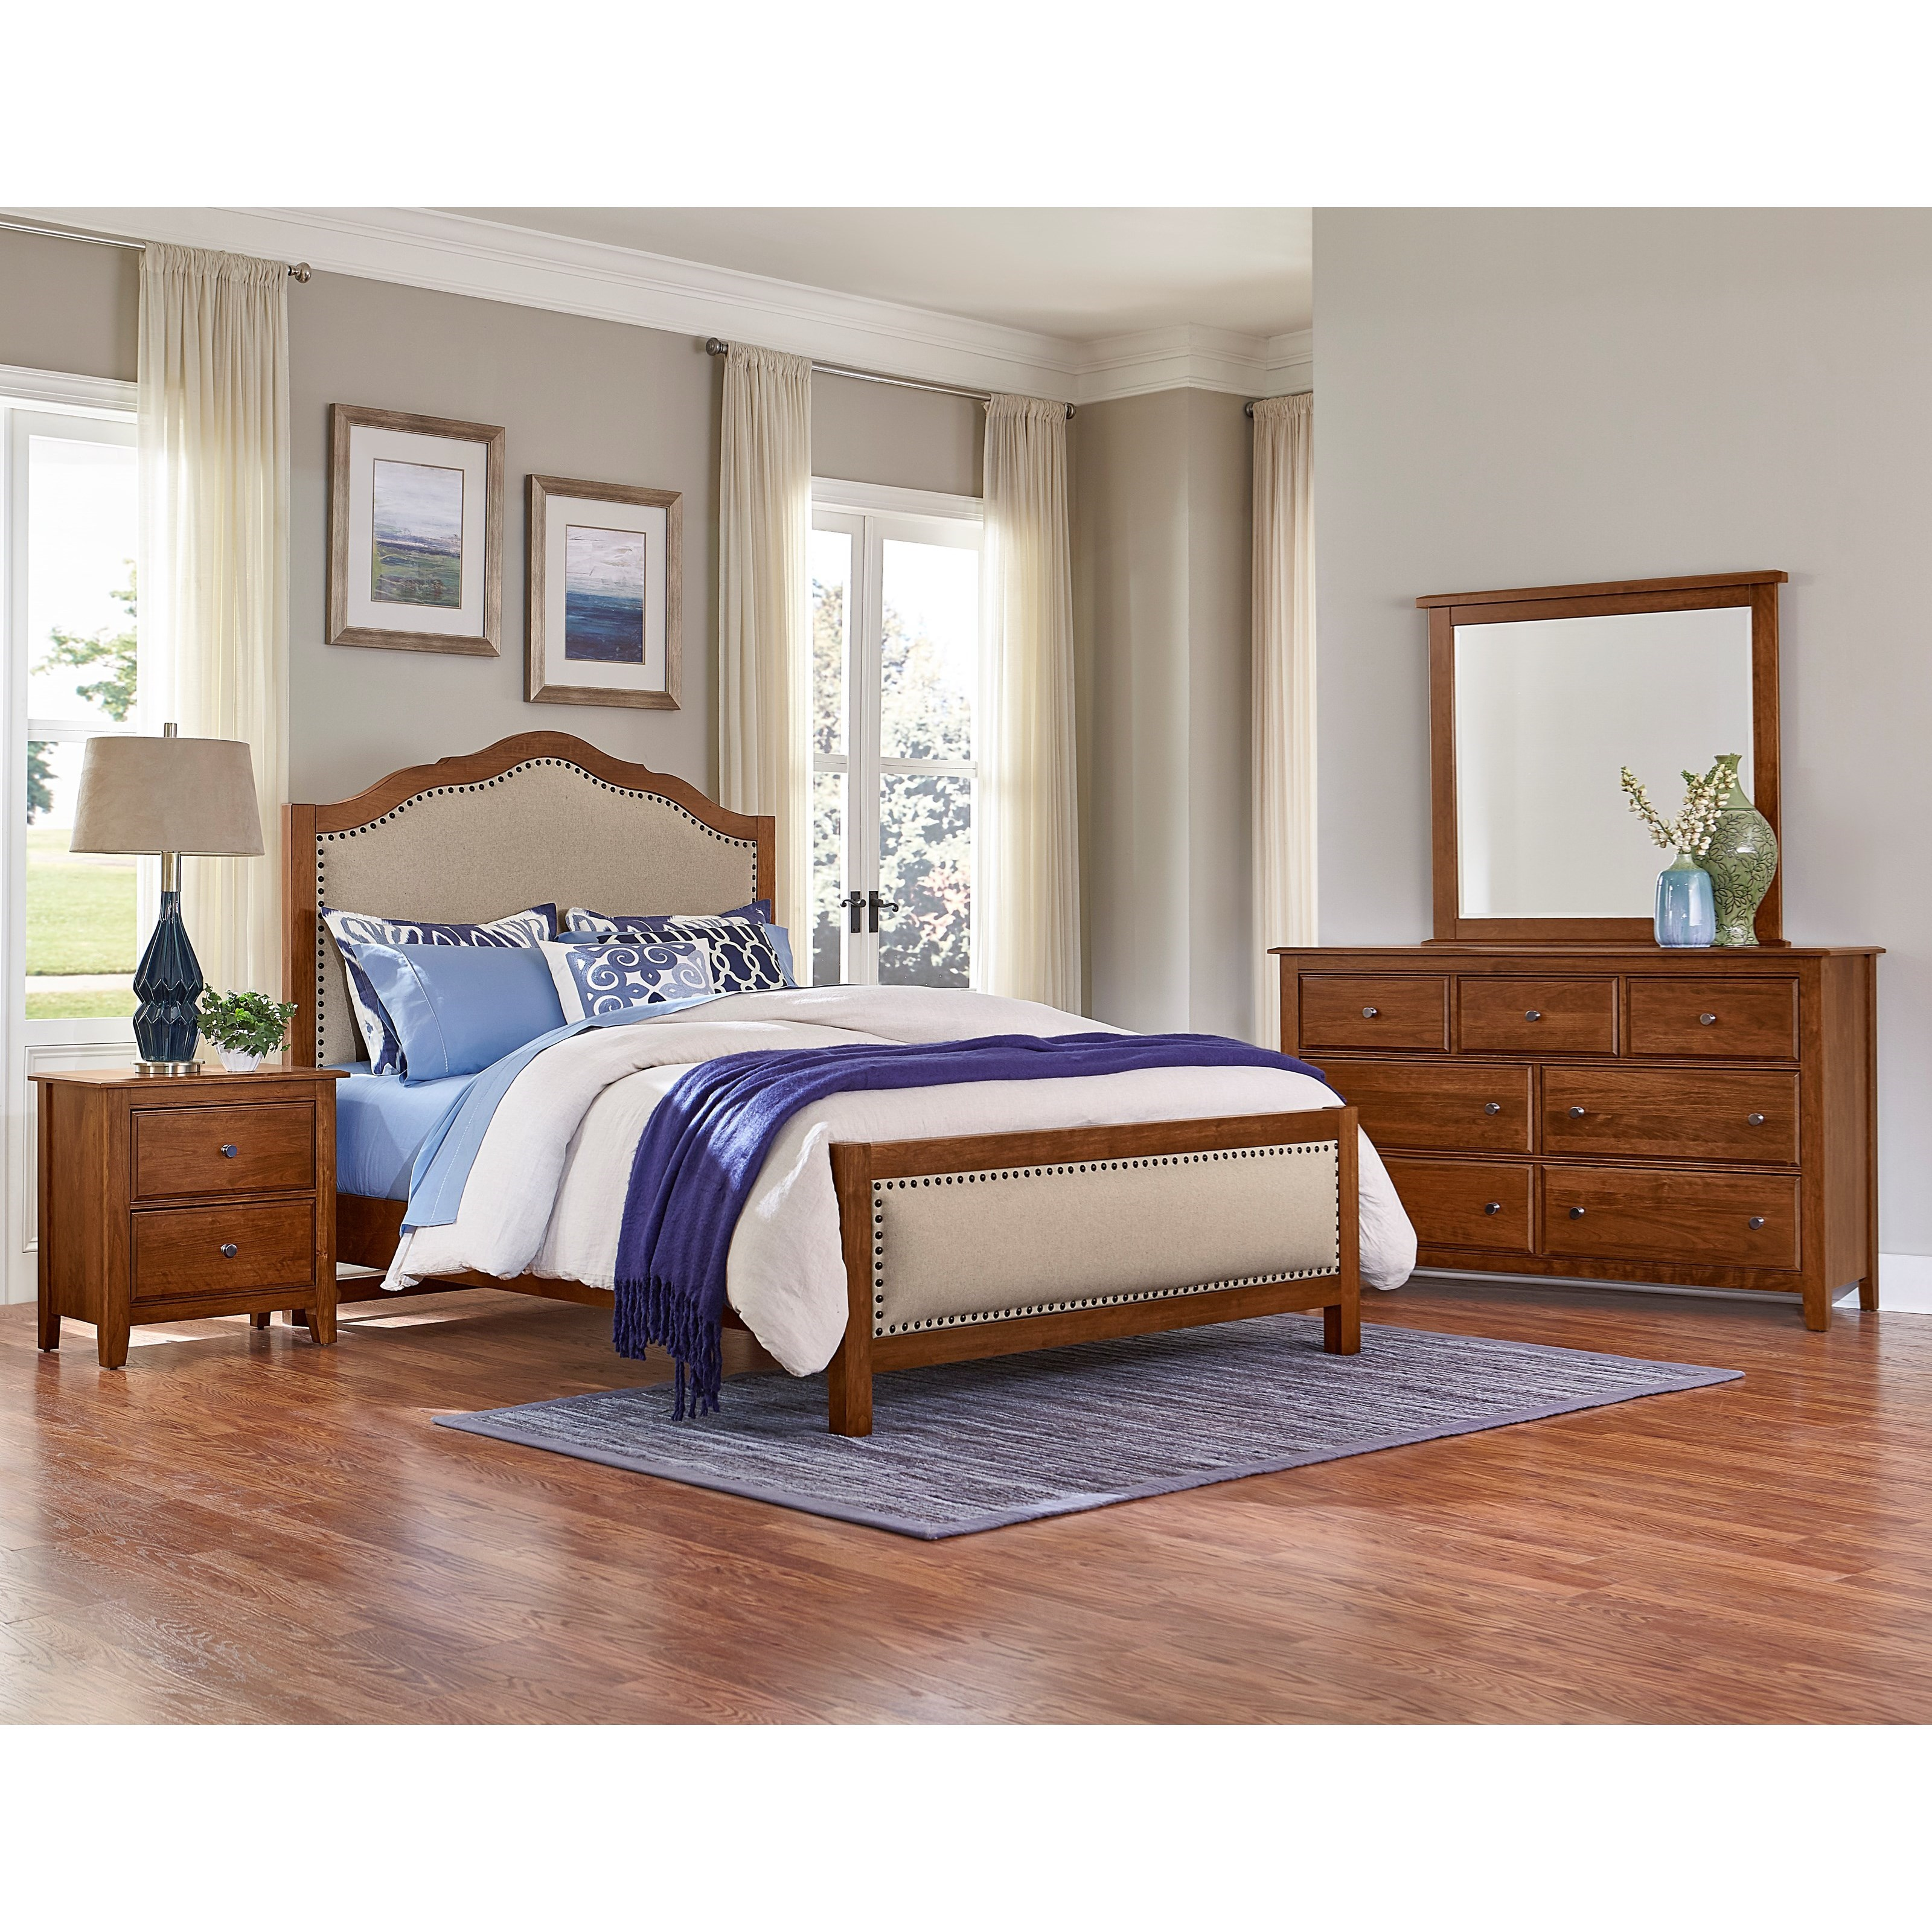 Artisan post artisan choices queen bedroom group for Bedroom furniture groups